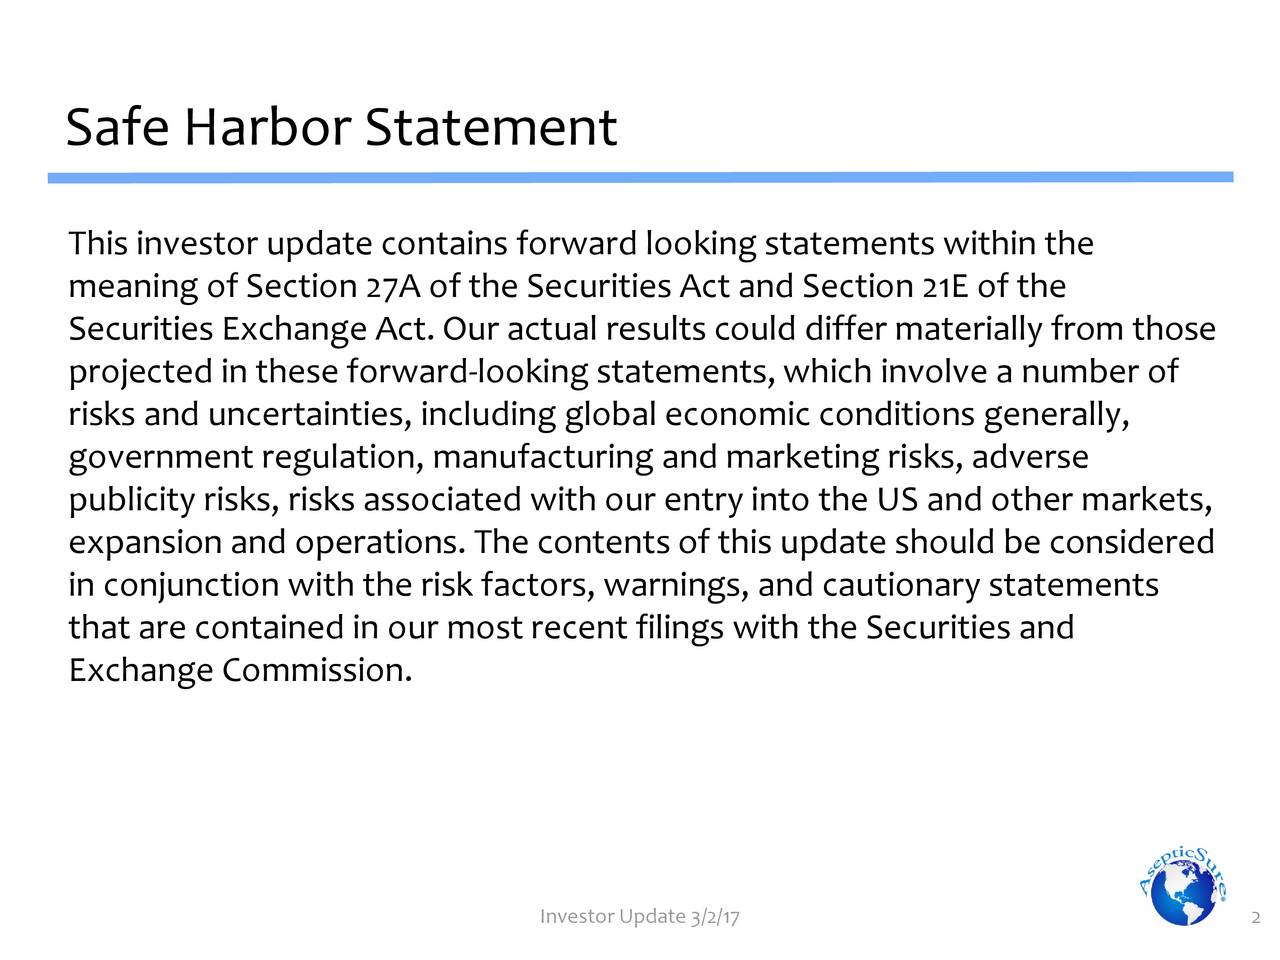 This investor update contains forward looking statements within the meaning of Section 27A of the Securities Act and Section 21E of the Securities Exchange Act. Our actual results could differ materially from those projected in these forward-looking statements,which involve a number of risks and uncertainties, including global economic conditions generally, government regulation, manufacturing and marketing risks, adverse publicity risks, risks associated with our entry into the US and other markets, expansion and operations. The contents of this update should be considered in conjunction with the risk factors, warnings, and cautionary statements that are contained in our most recent filings with the Securities and Exchange Commission. Investor Update 3/2/17 2